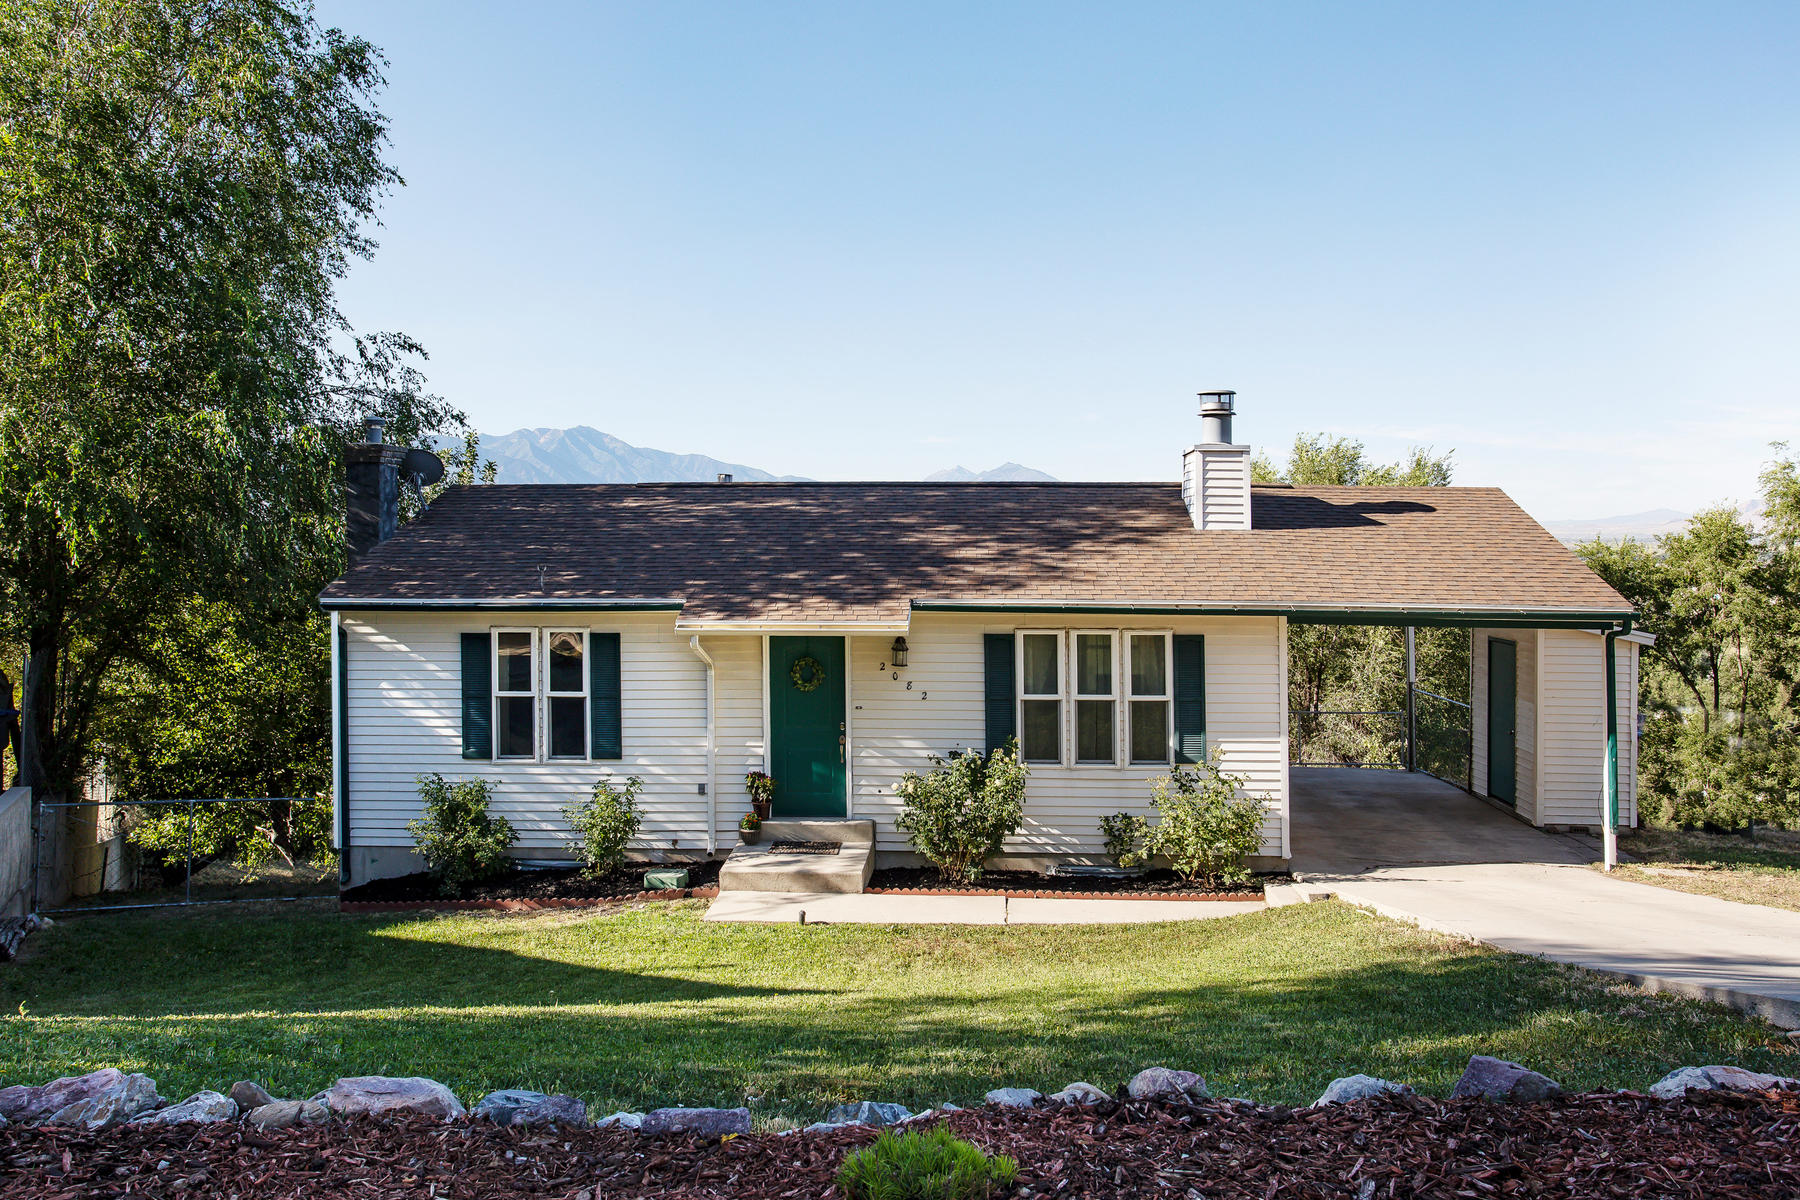 Single Family Homes for Sale at Now Is Your Chance To Own a Home With Spectacular Views 2082 S Park Street, Provo, Utah 84606 United States